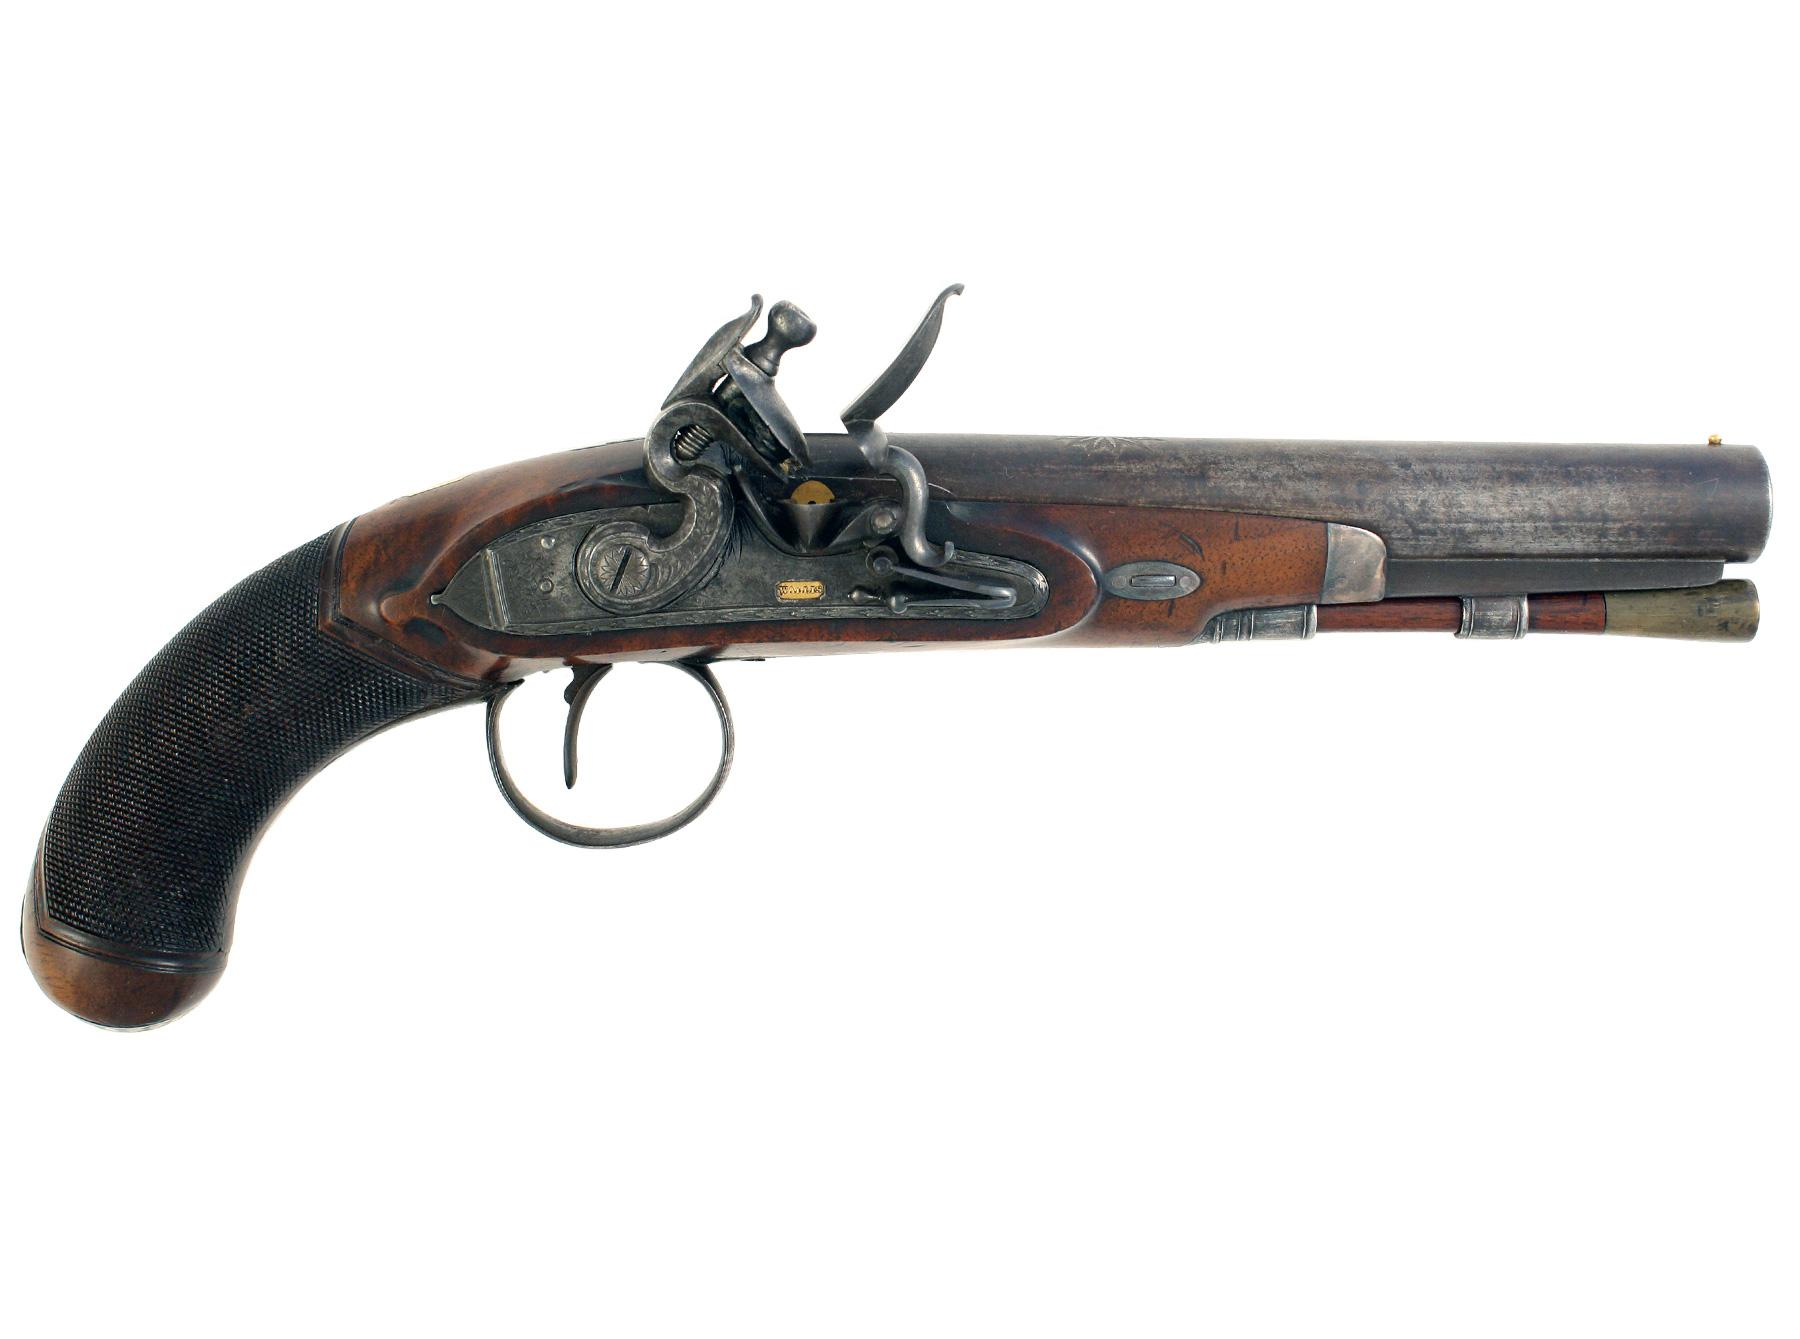 A Flintlock Pistol by Wallis of Hull